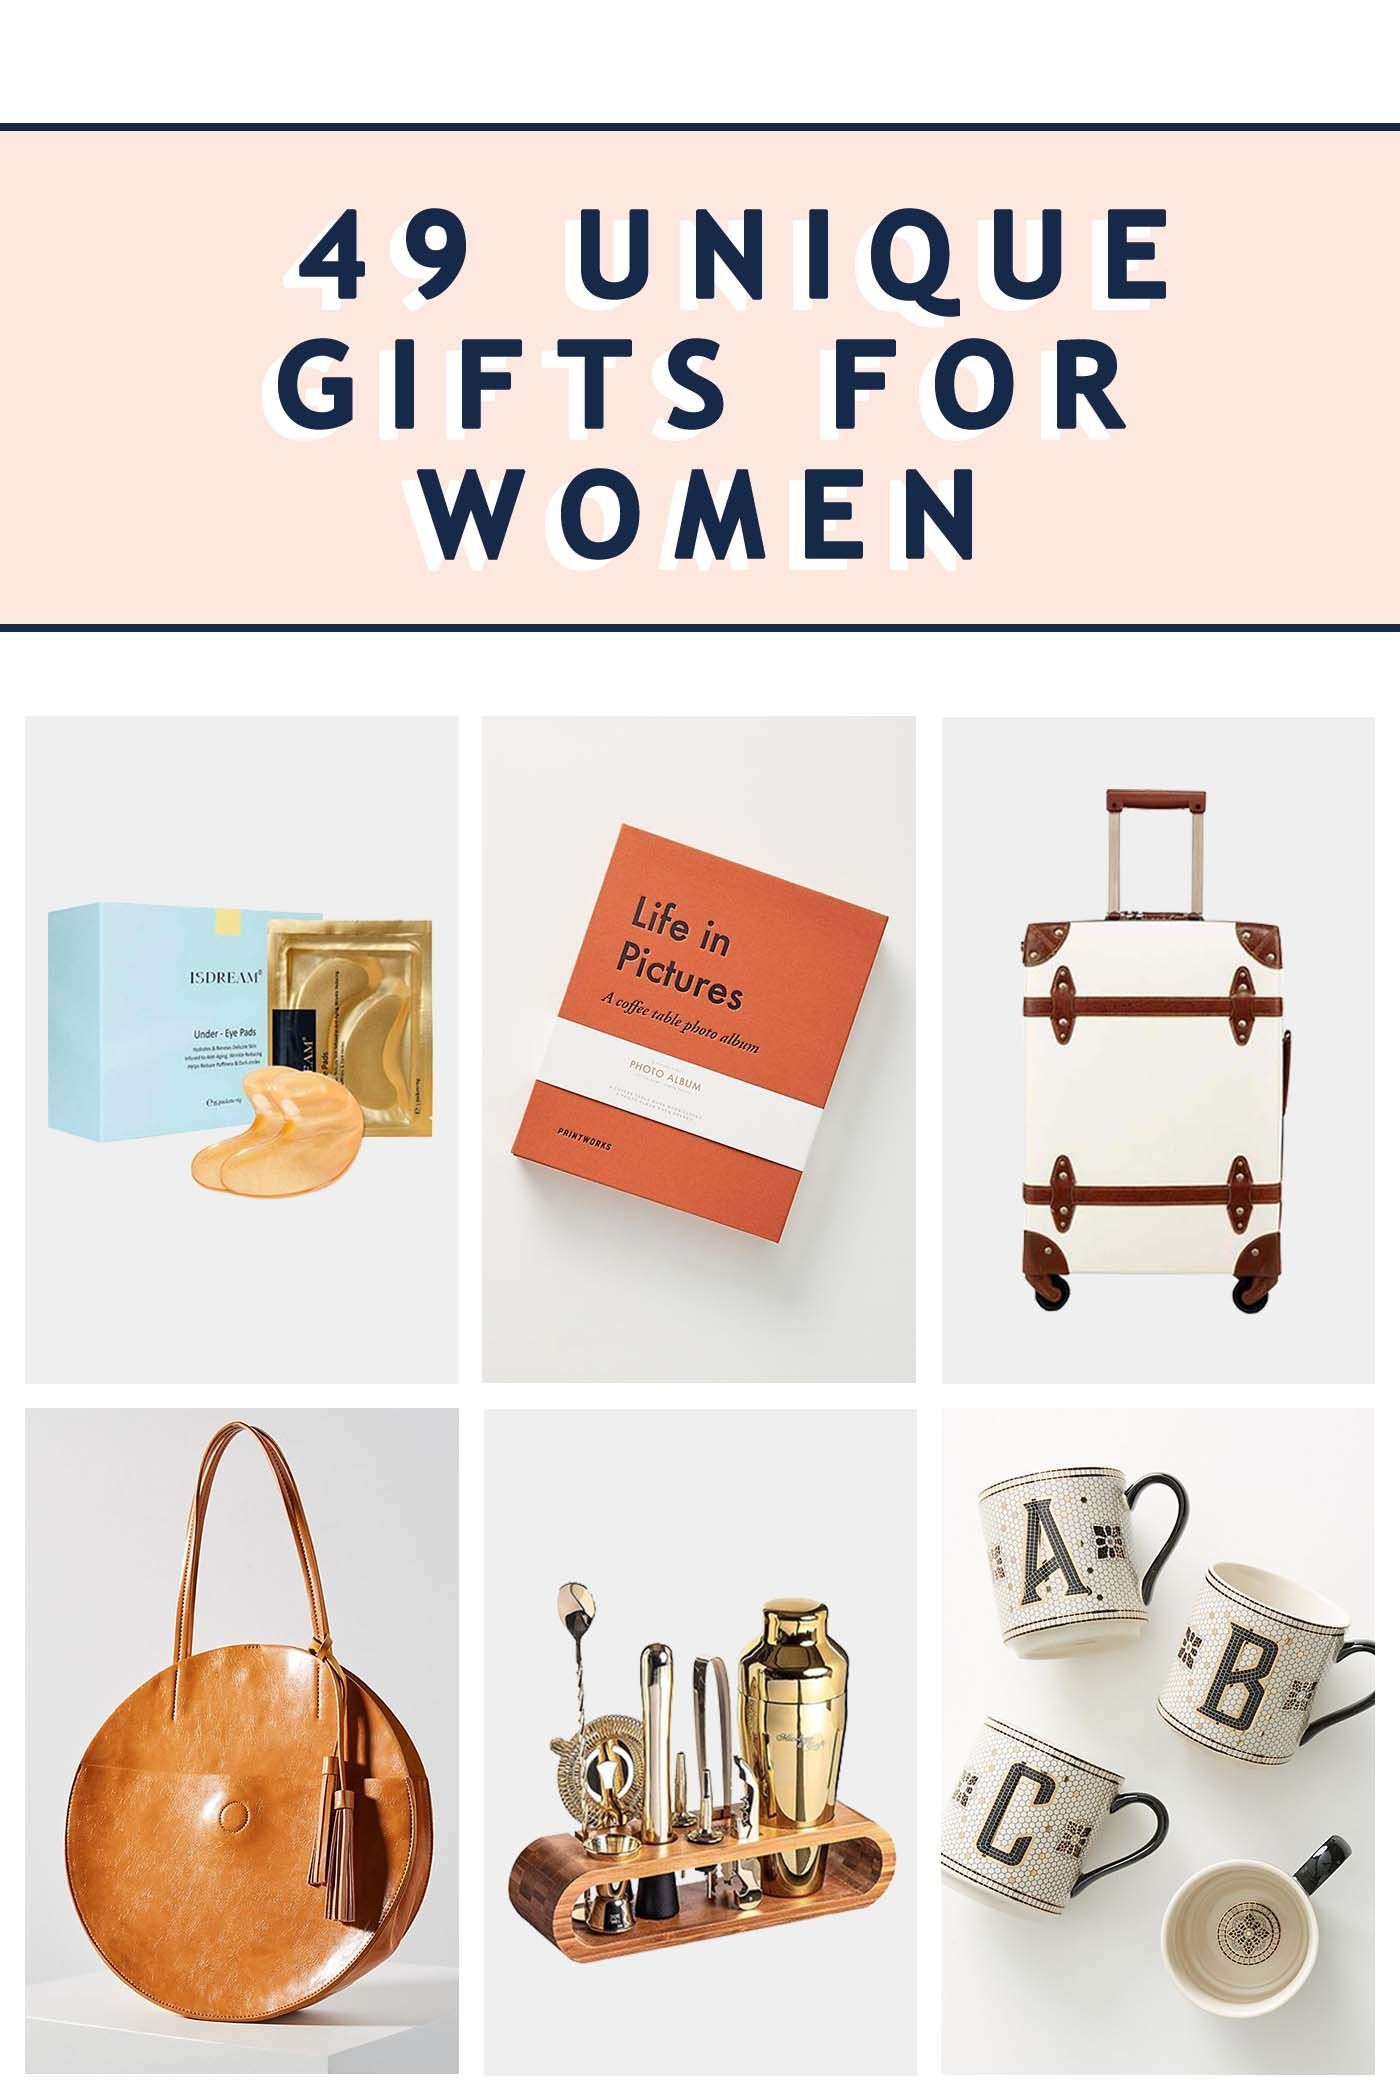 49 Unique Gifts For Women For Any Occasion Sugar Cloth Unique Gifts For Women Unique Christmas Gifts Gifts For Women